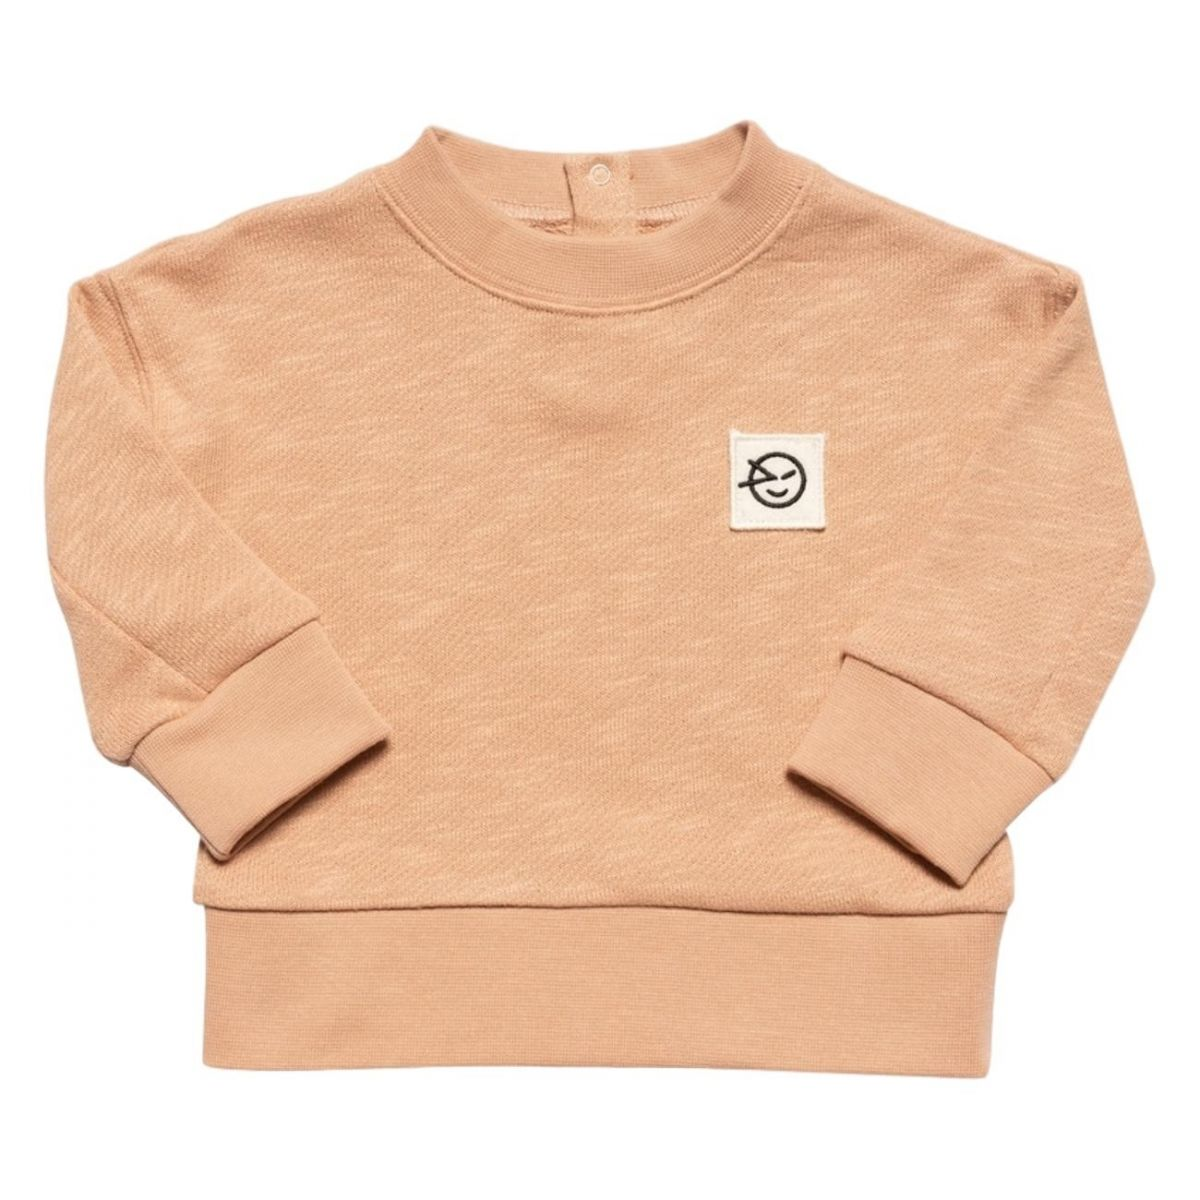 Wynken - Daily Sweat dull pink - 1